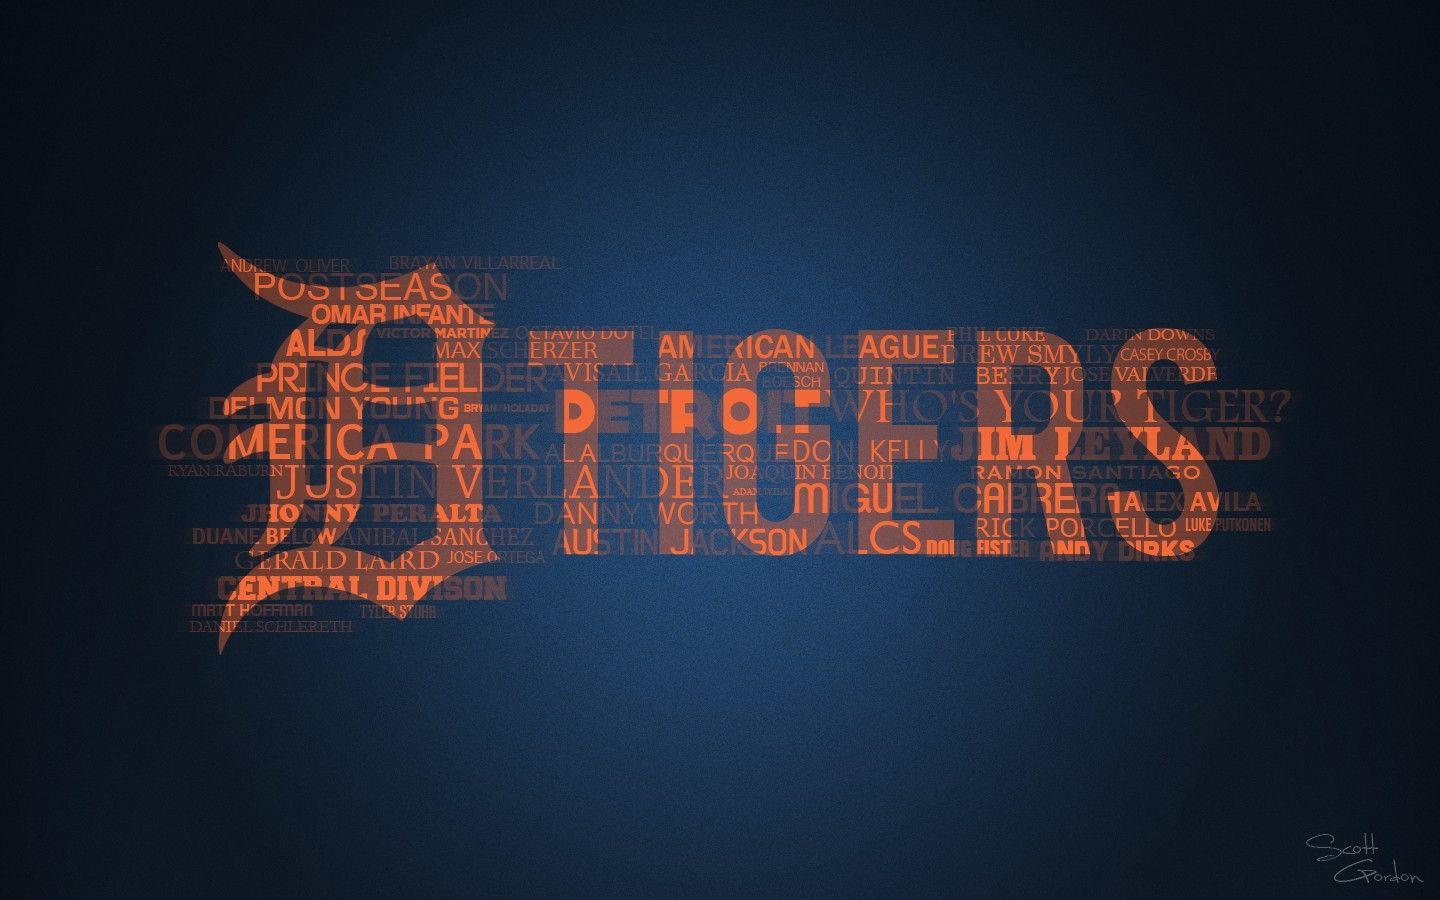 Detroit Tigers Wallpaper (8 Wallpapers) – HD Wallpapers